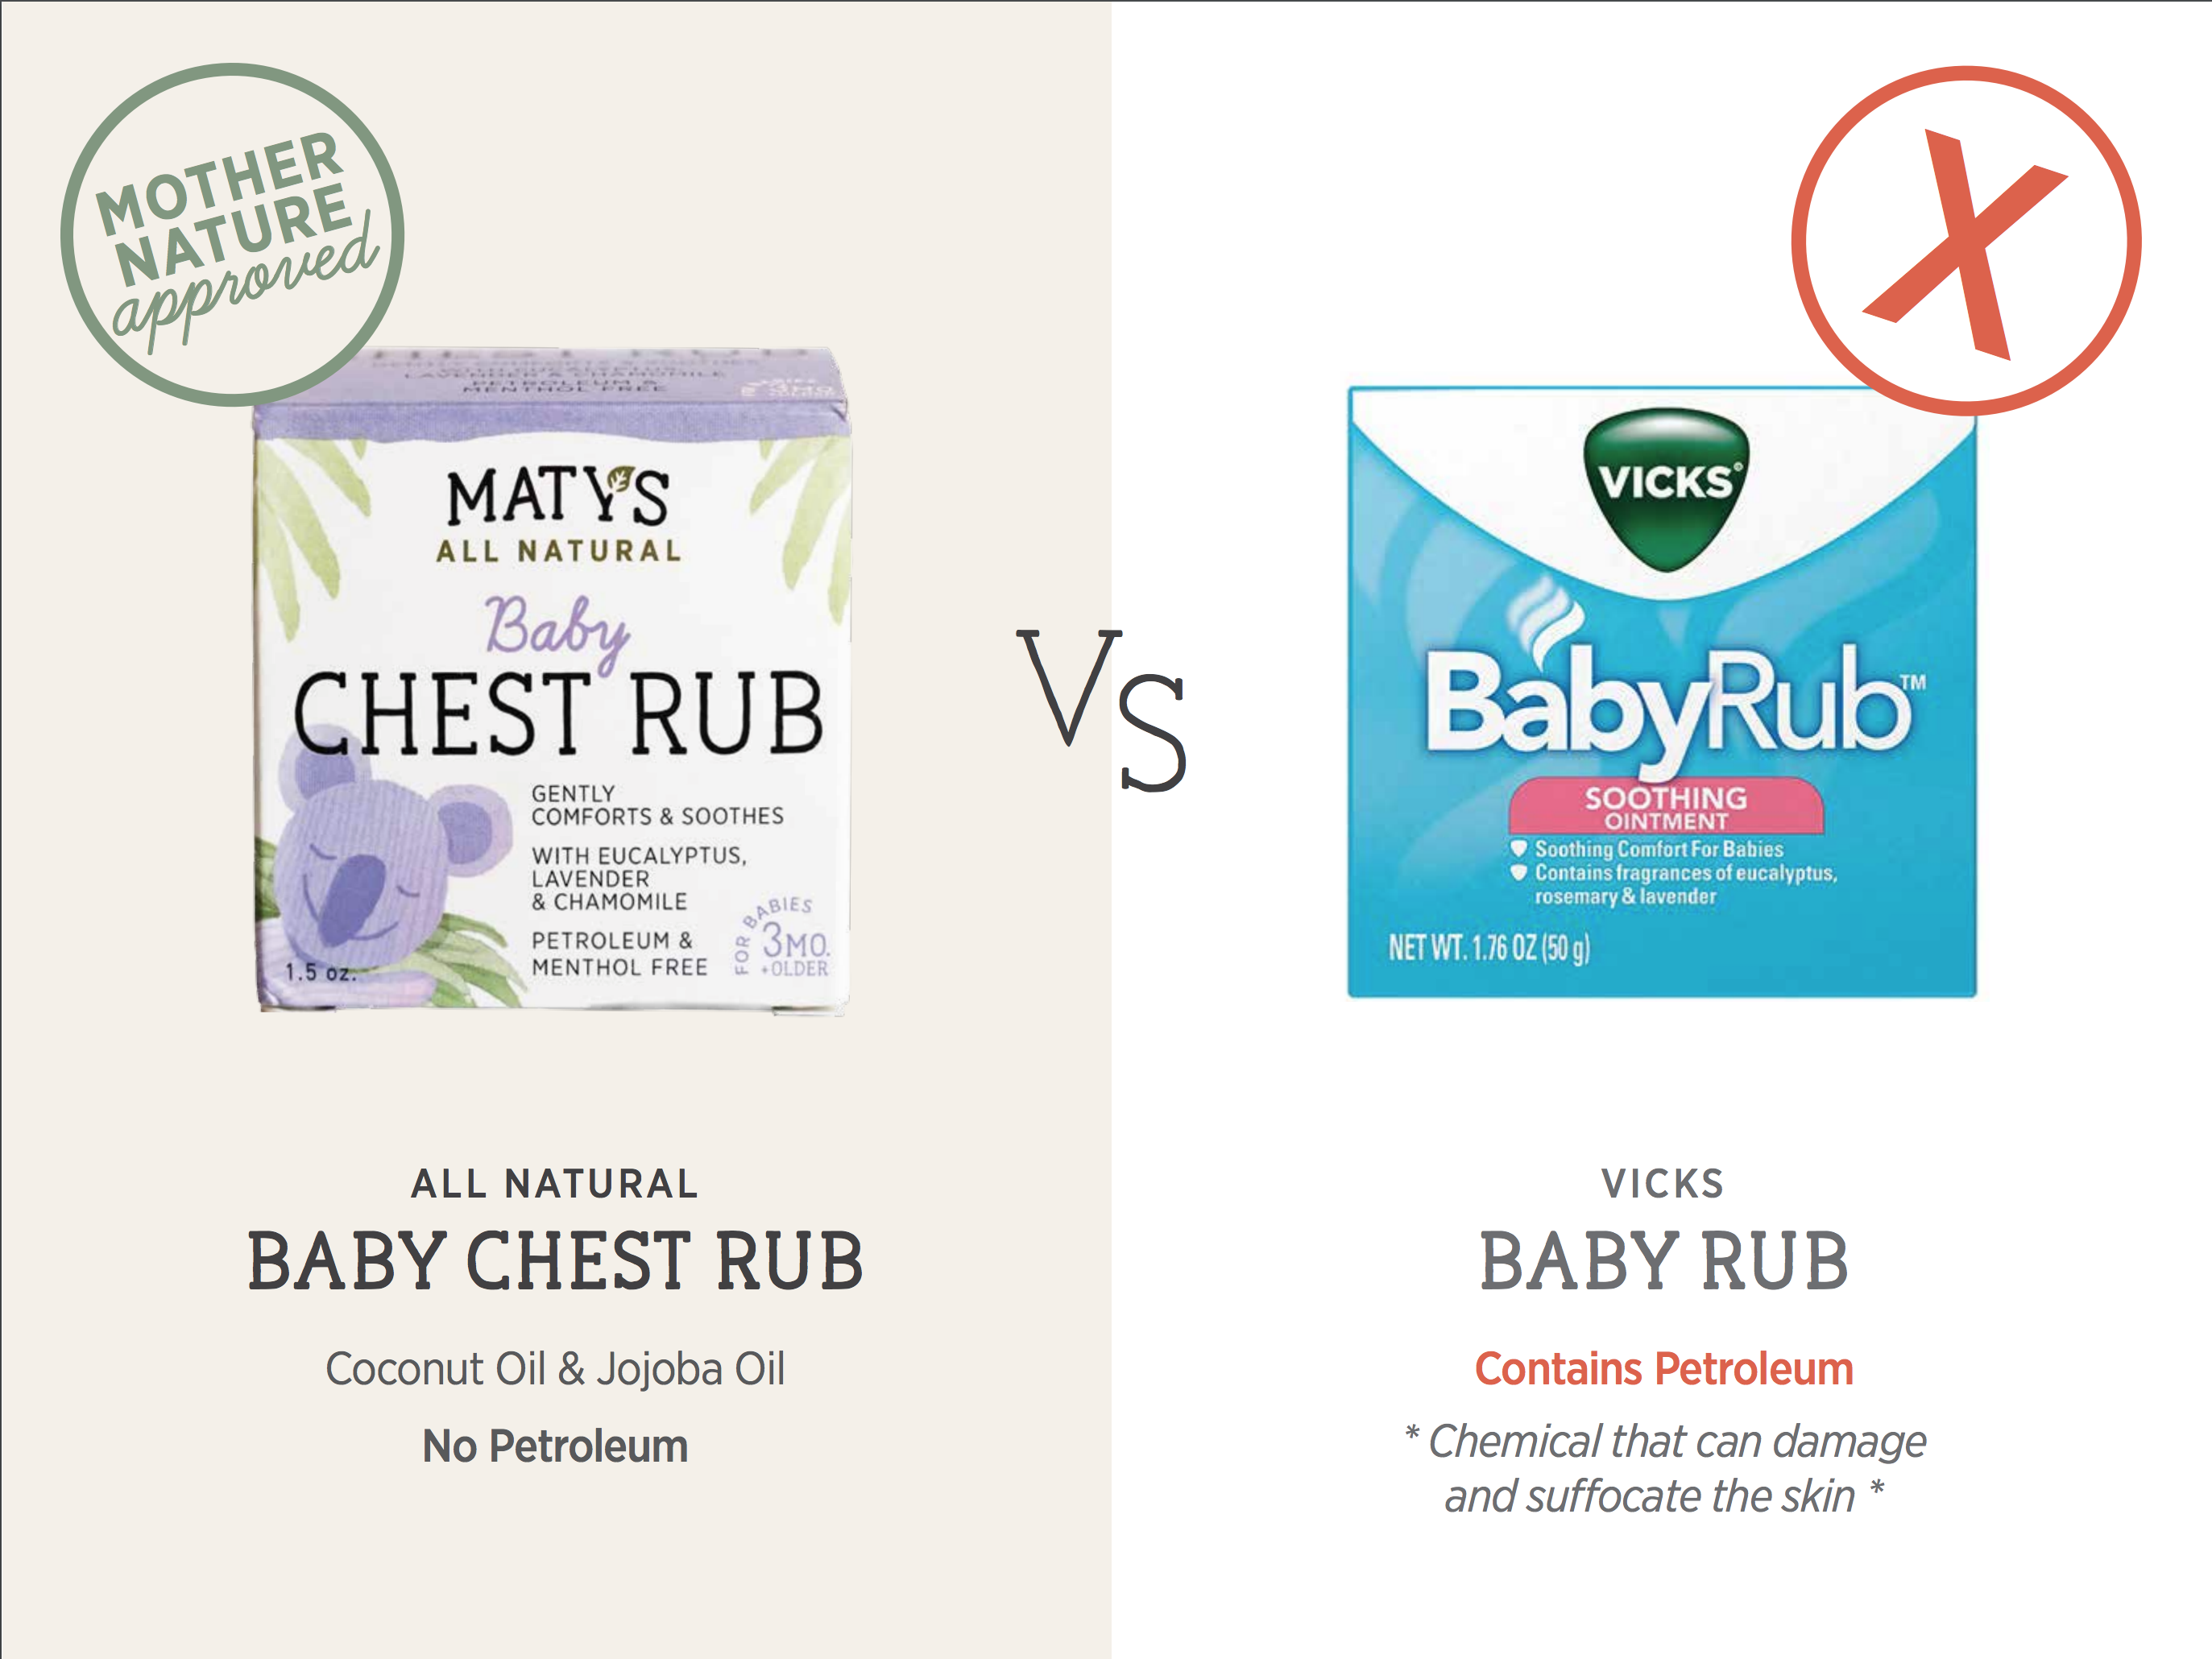 All Natural replacement for Vicks BabyRub